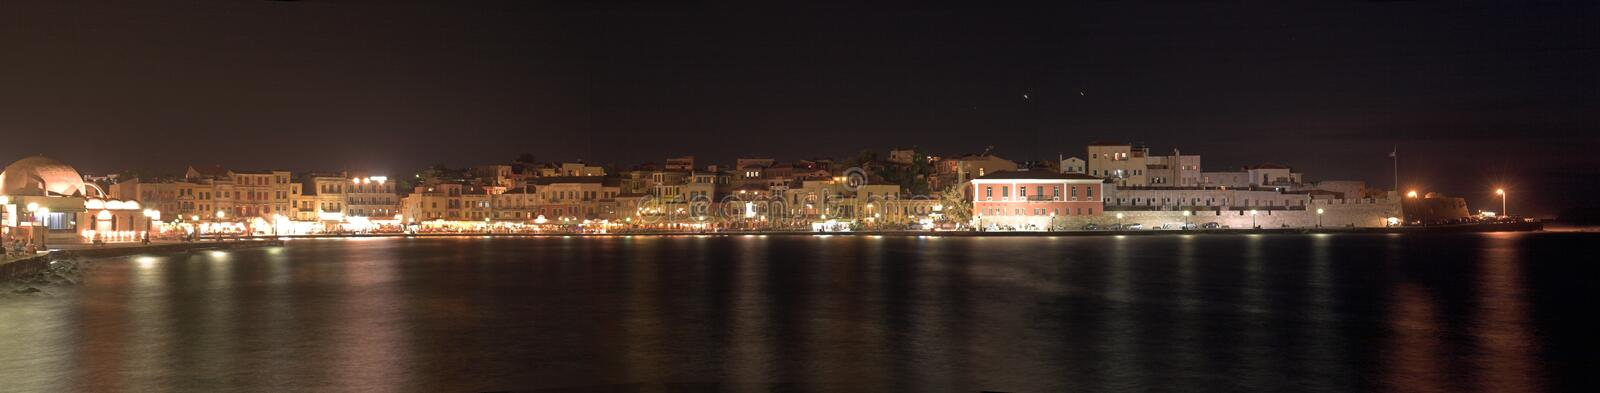 Chania photo libre de droits